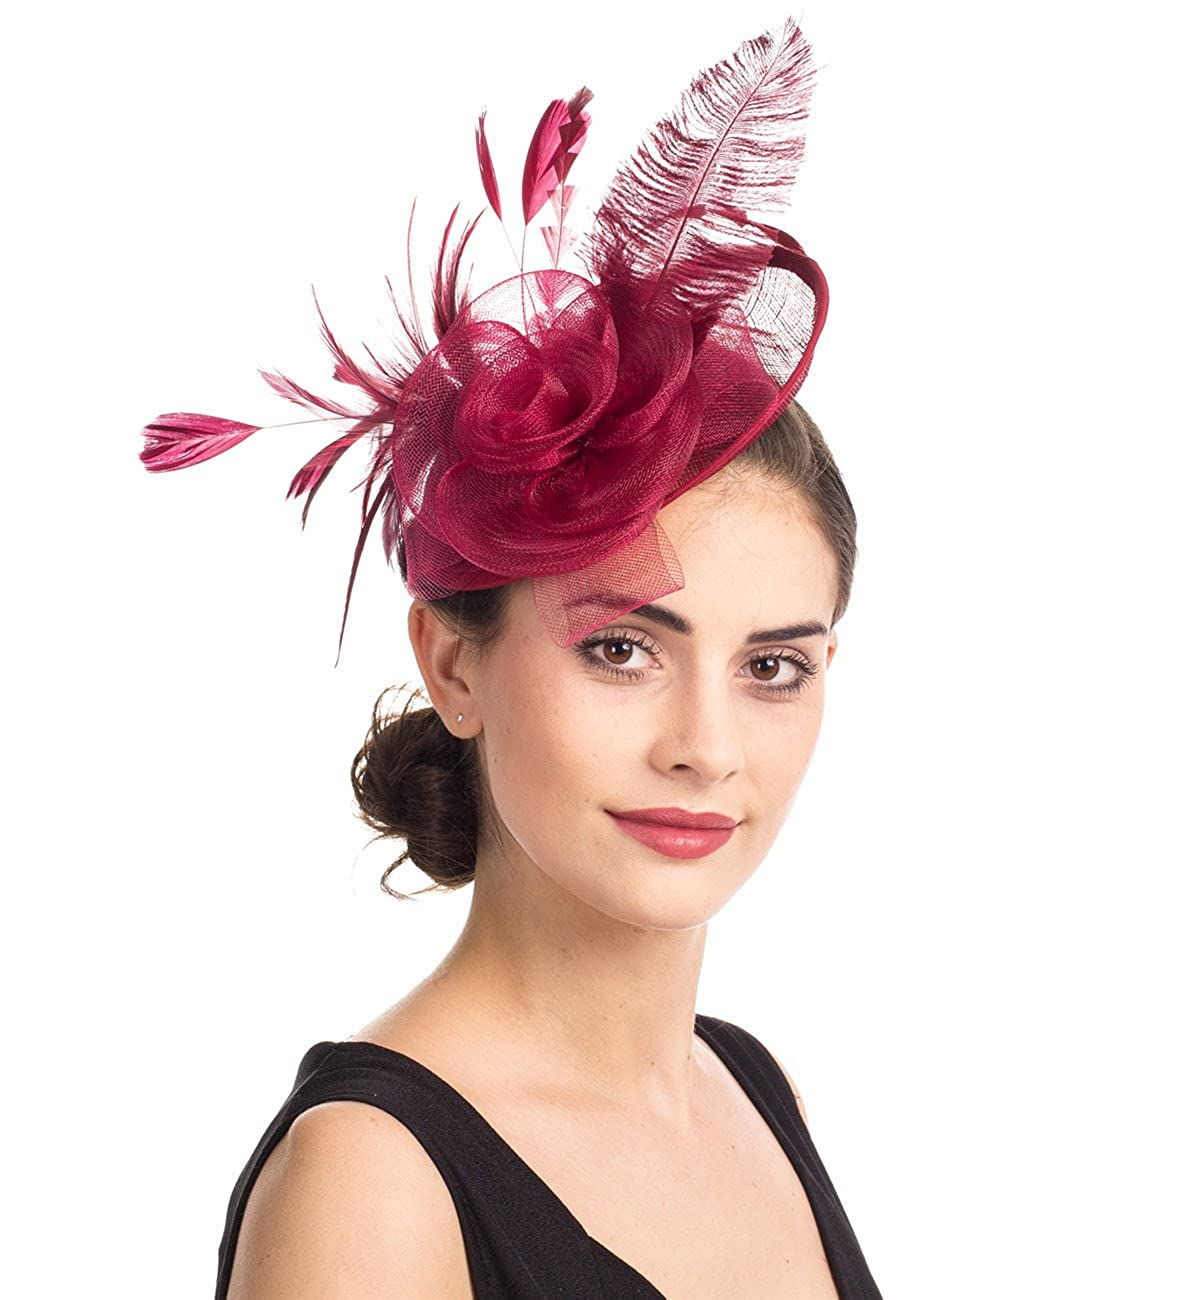 d4c12de8cc2ba Sinamay Flower Feather Headband Fascinator Wedding Headwear Ladies Race  Royal Ascot Pillbox Wedding Cocktail Tea Party Derby Hat For Women